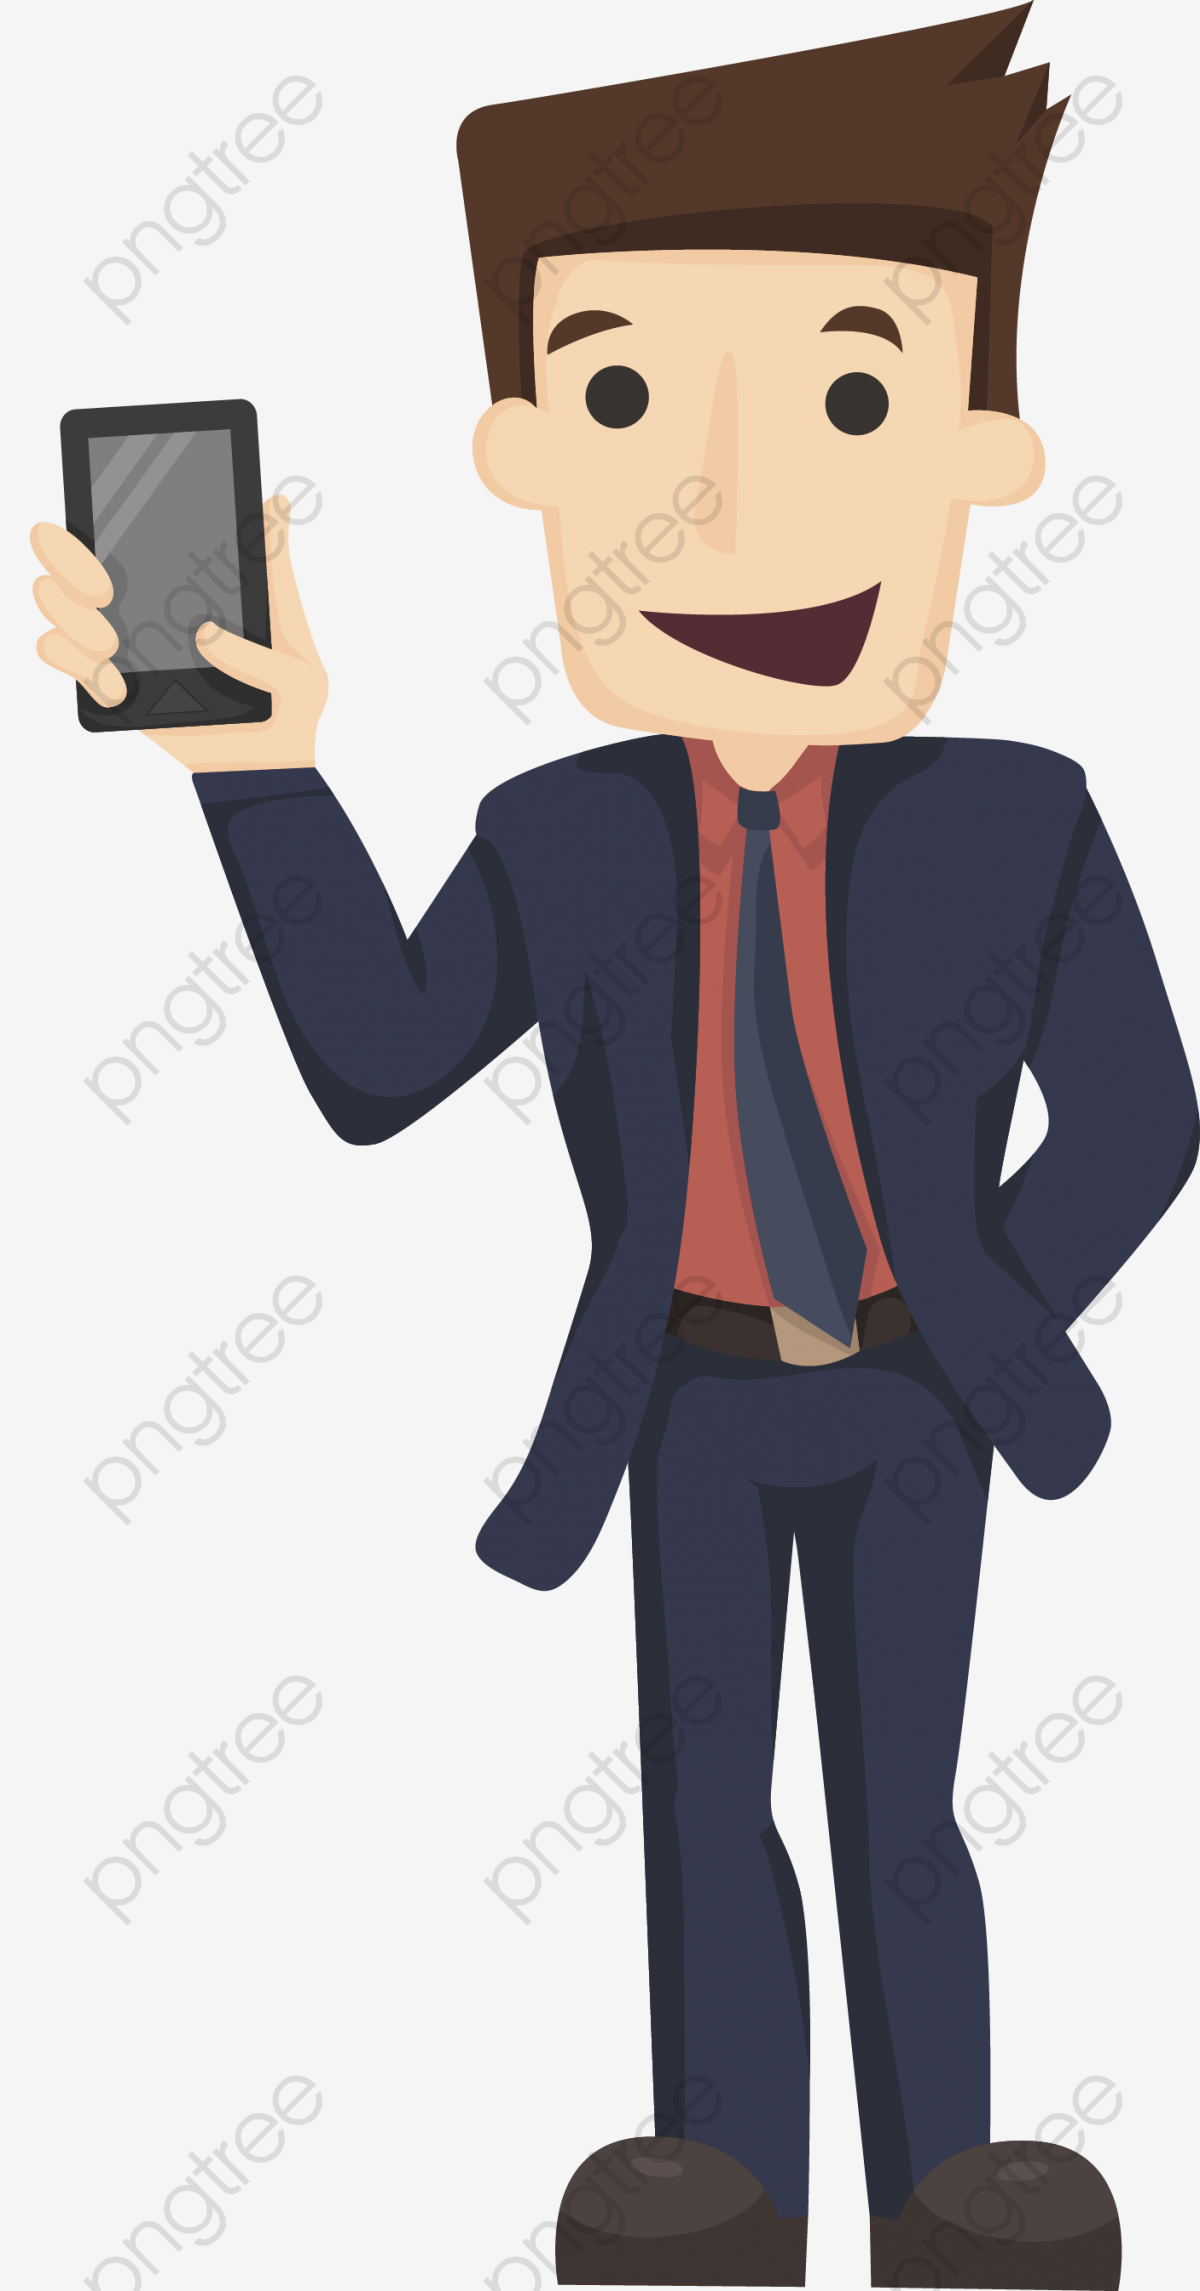 Mobile phones for young. Free clipart of person looking at phone and smiling